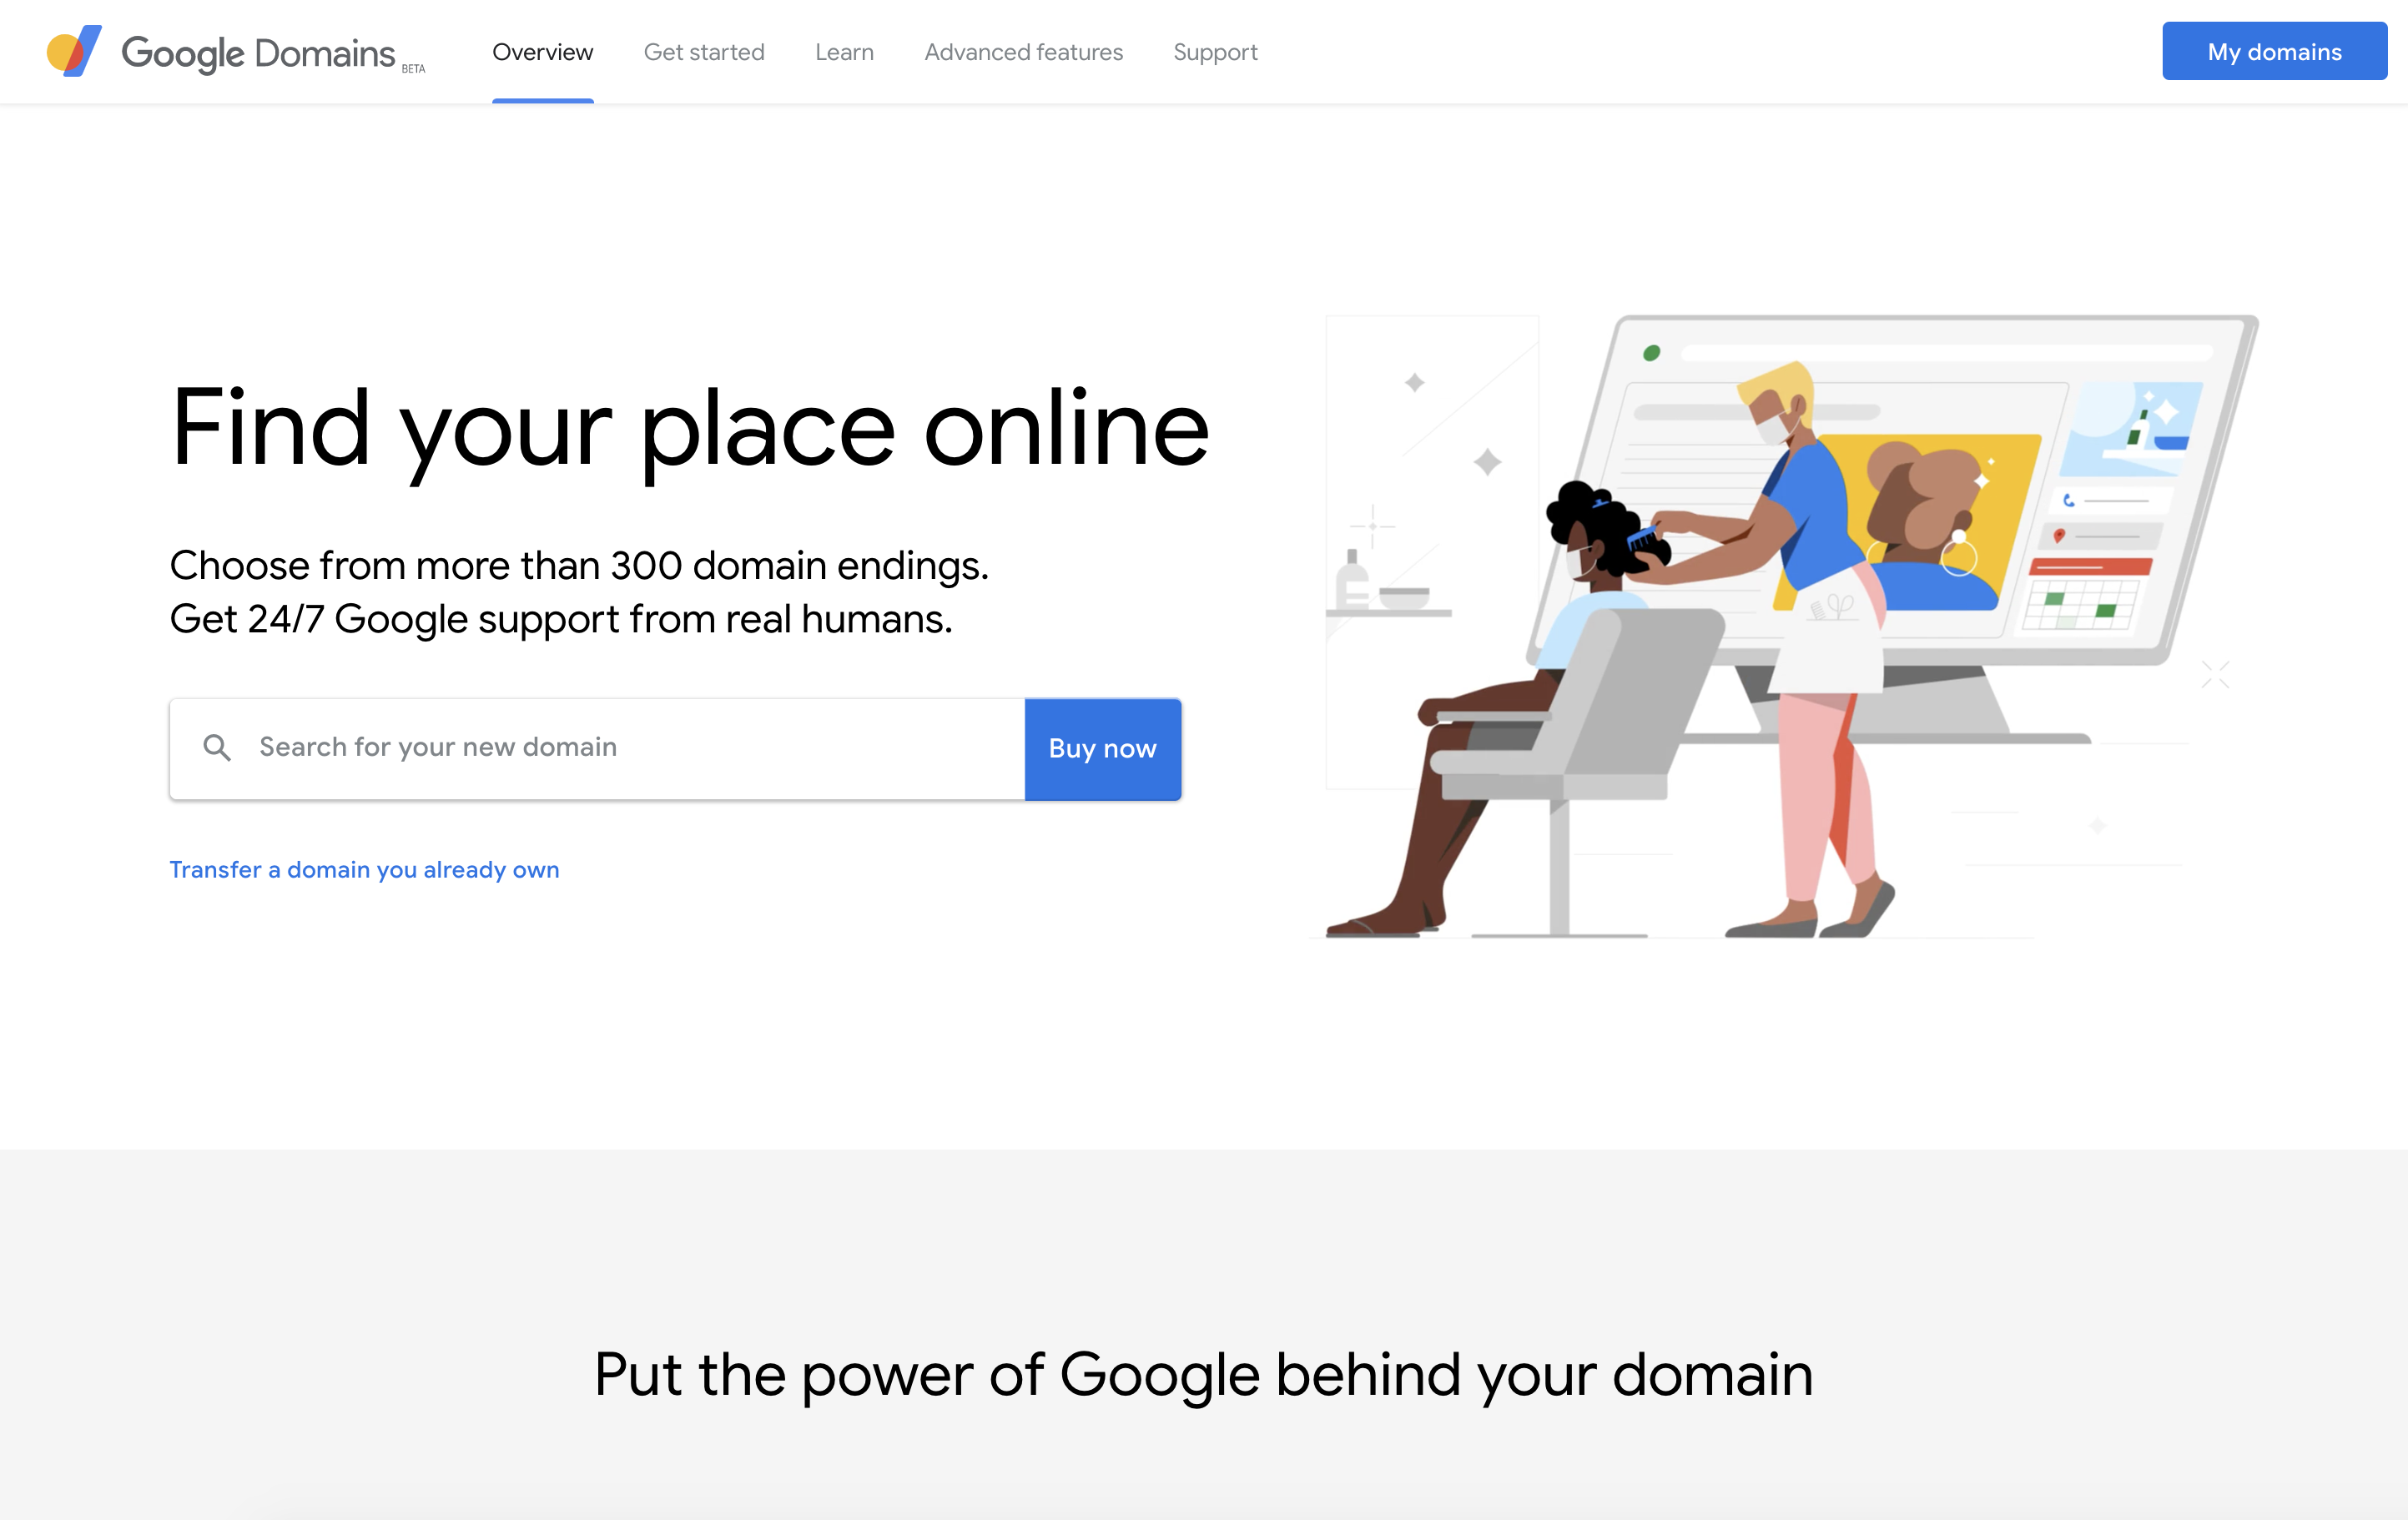 The best place to purchase a domain name